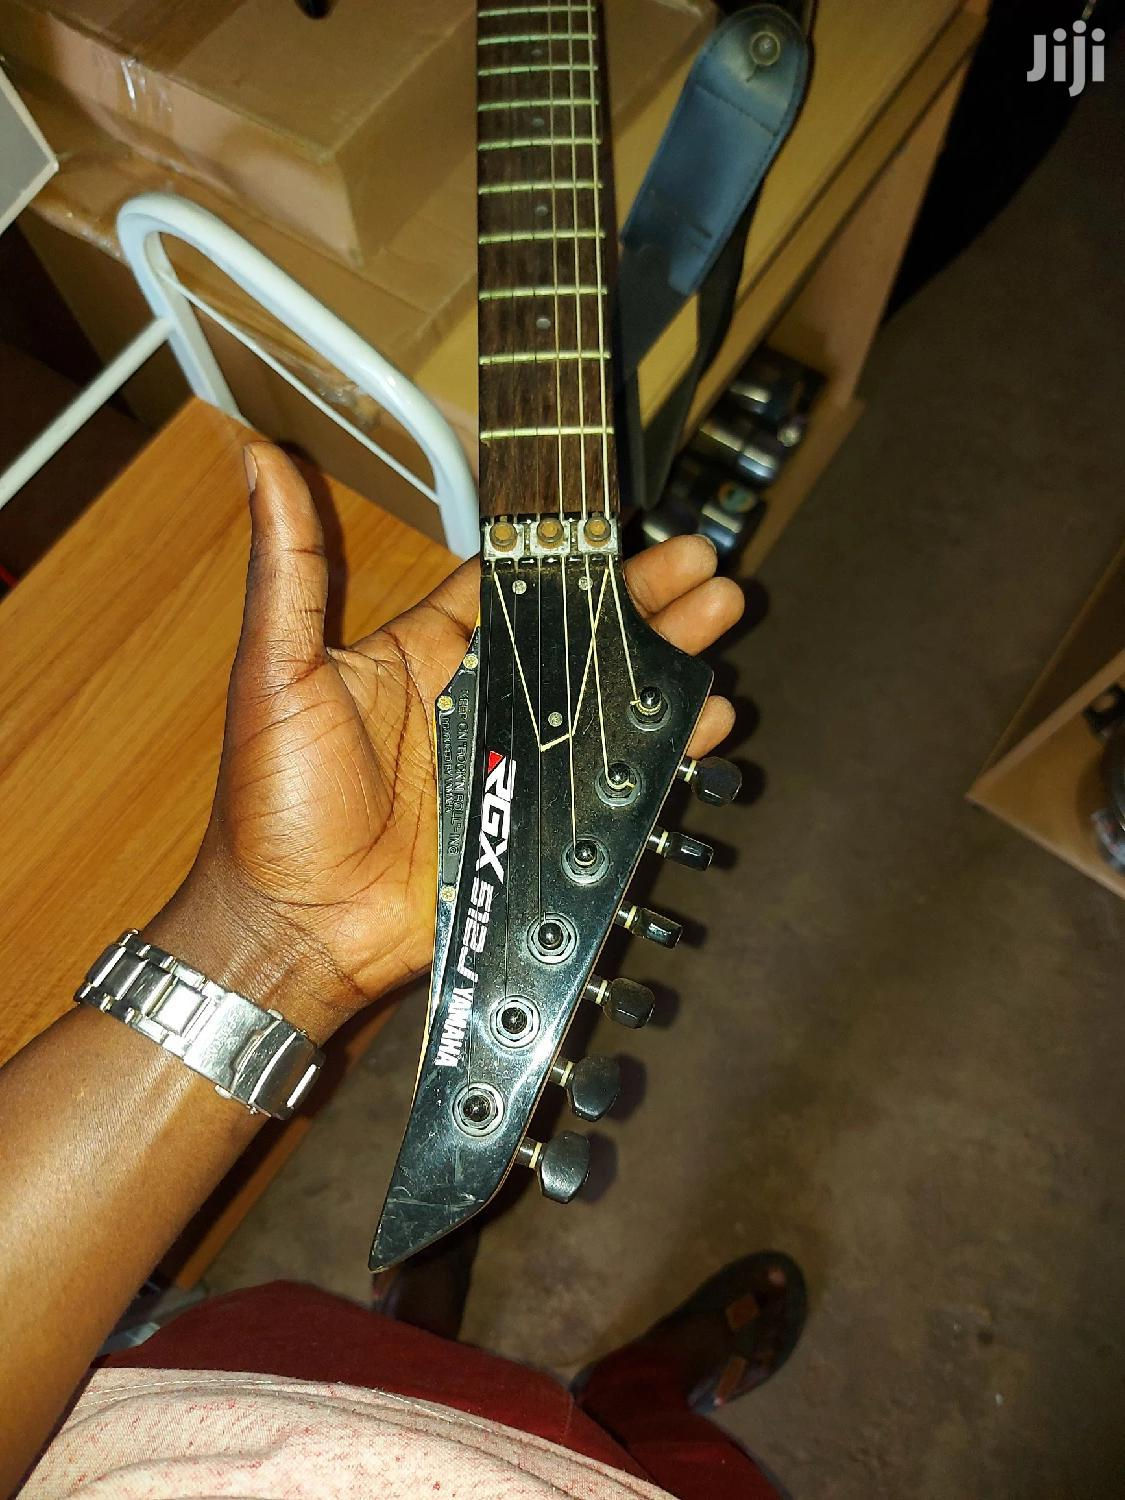 Used Electric Guitar On Sale